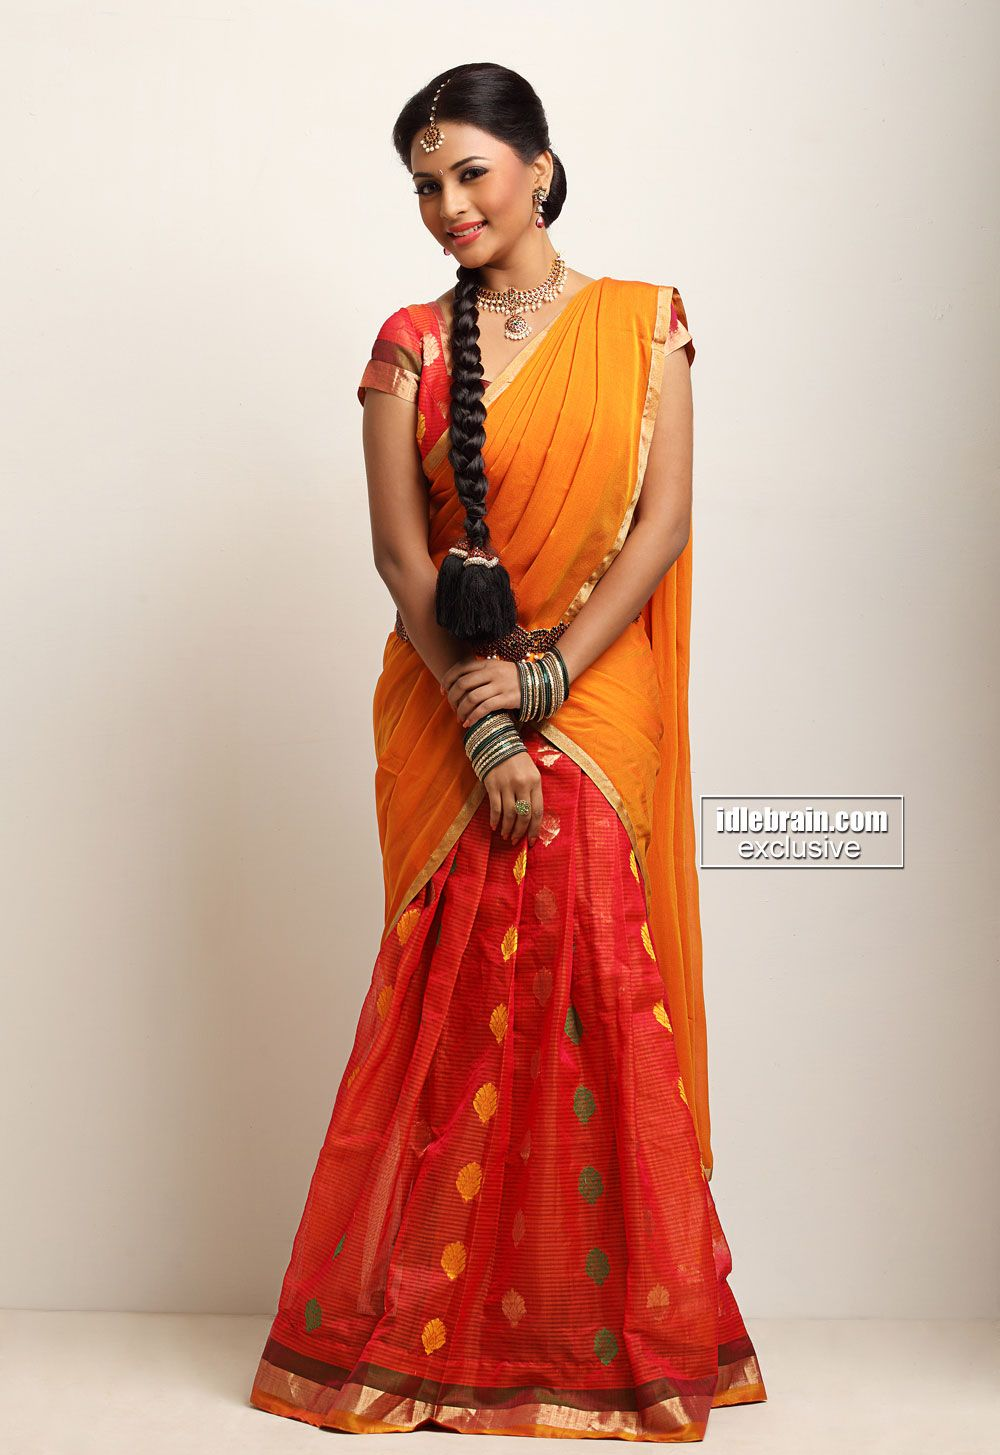 Fashion style How to half wear saree type sarees for lady